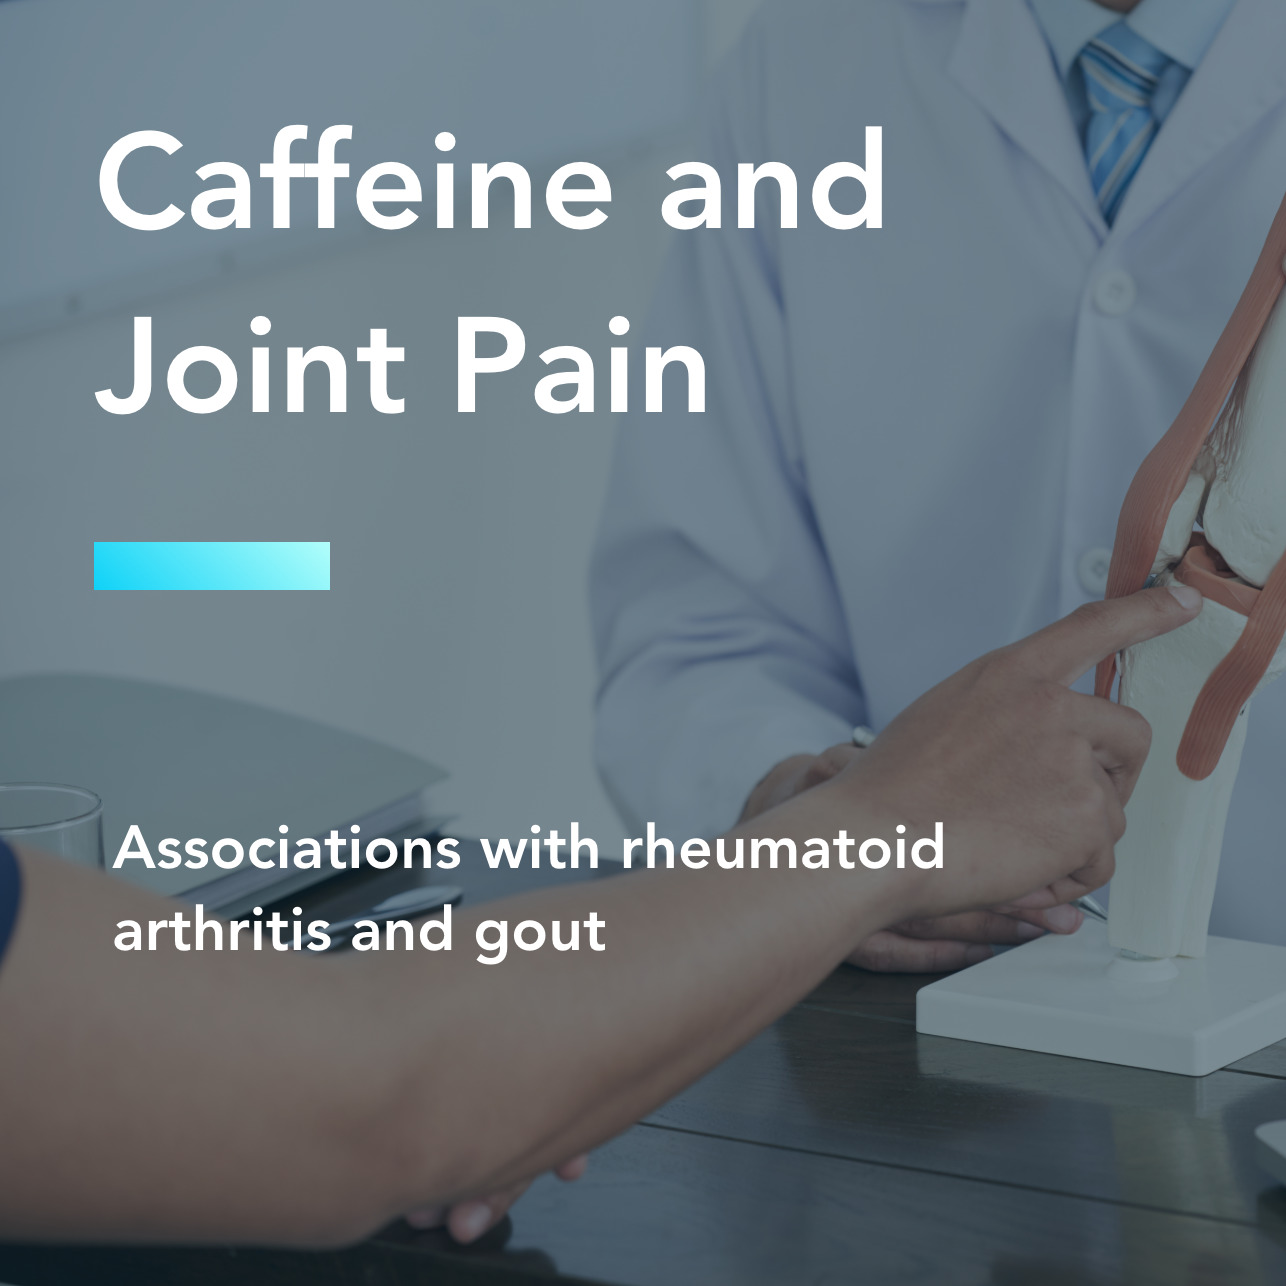 caffeine and joint pain title